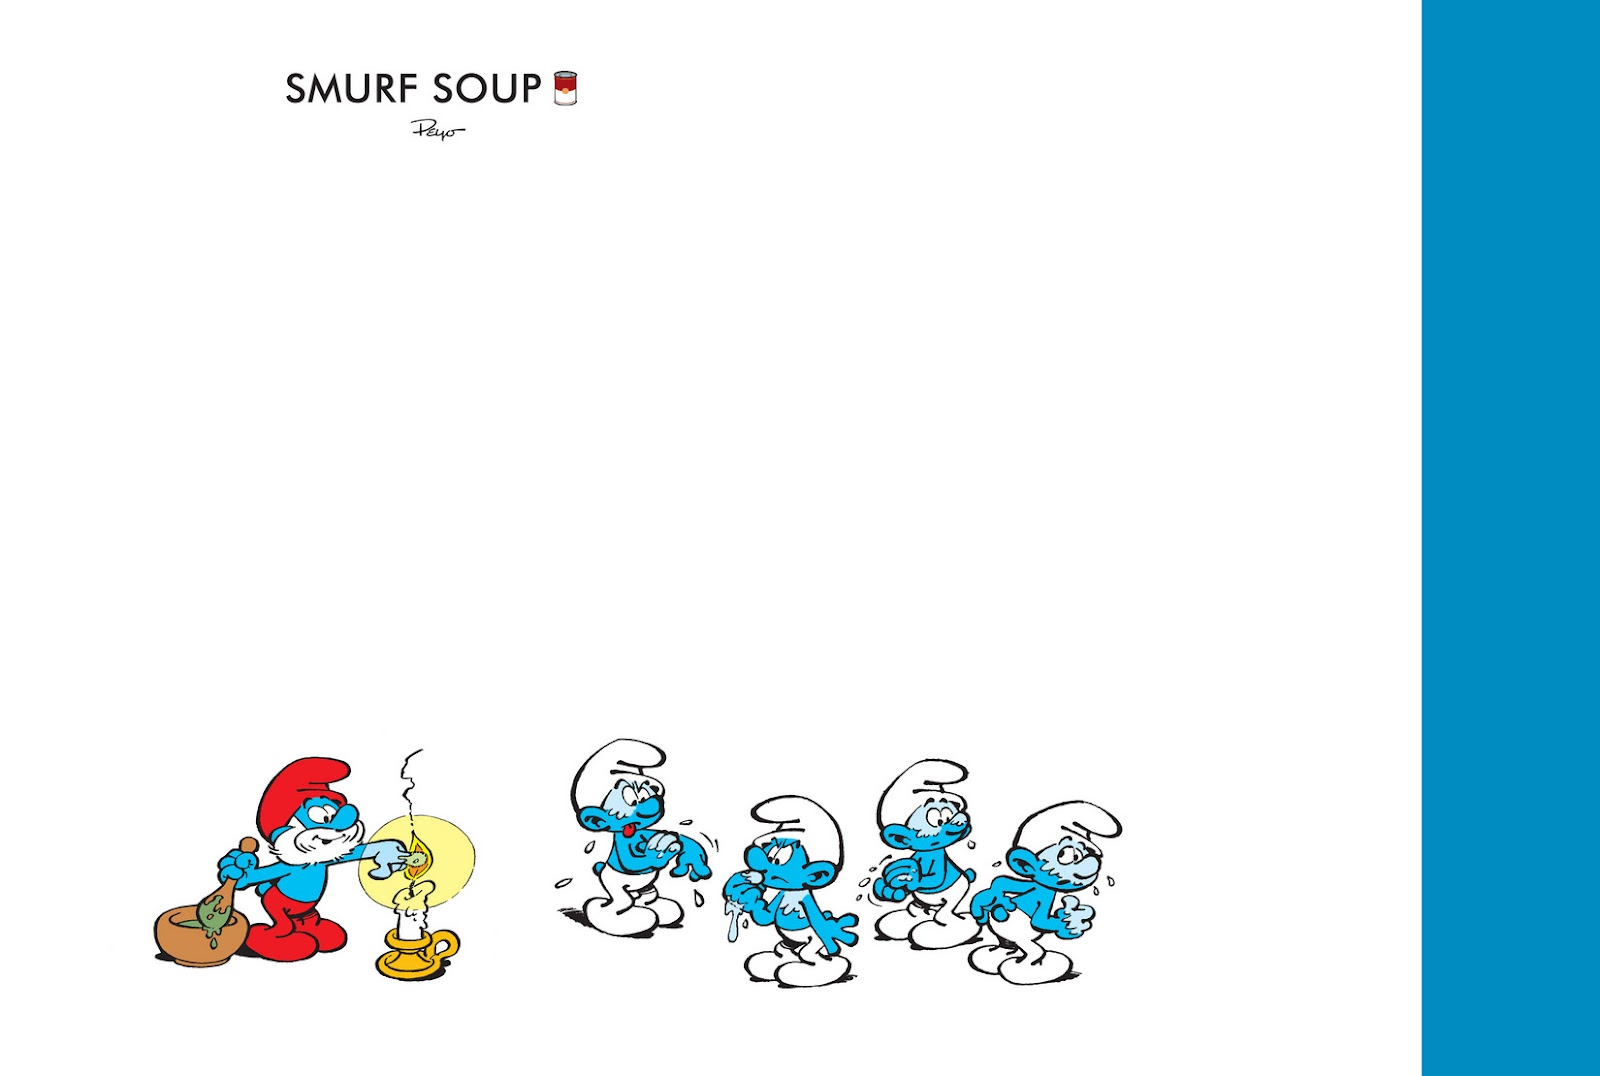 Read online The Smurfs comic -  Issue #13 - 2